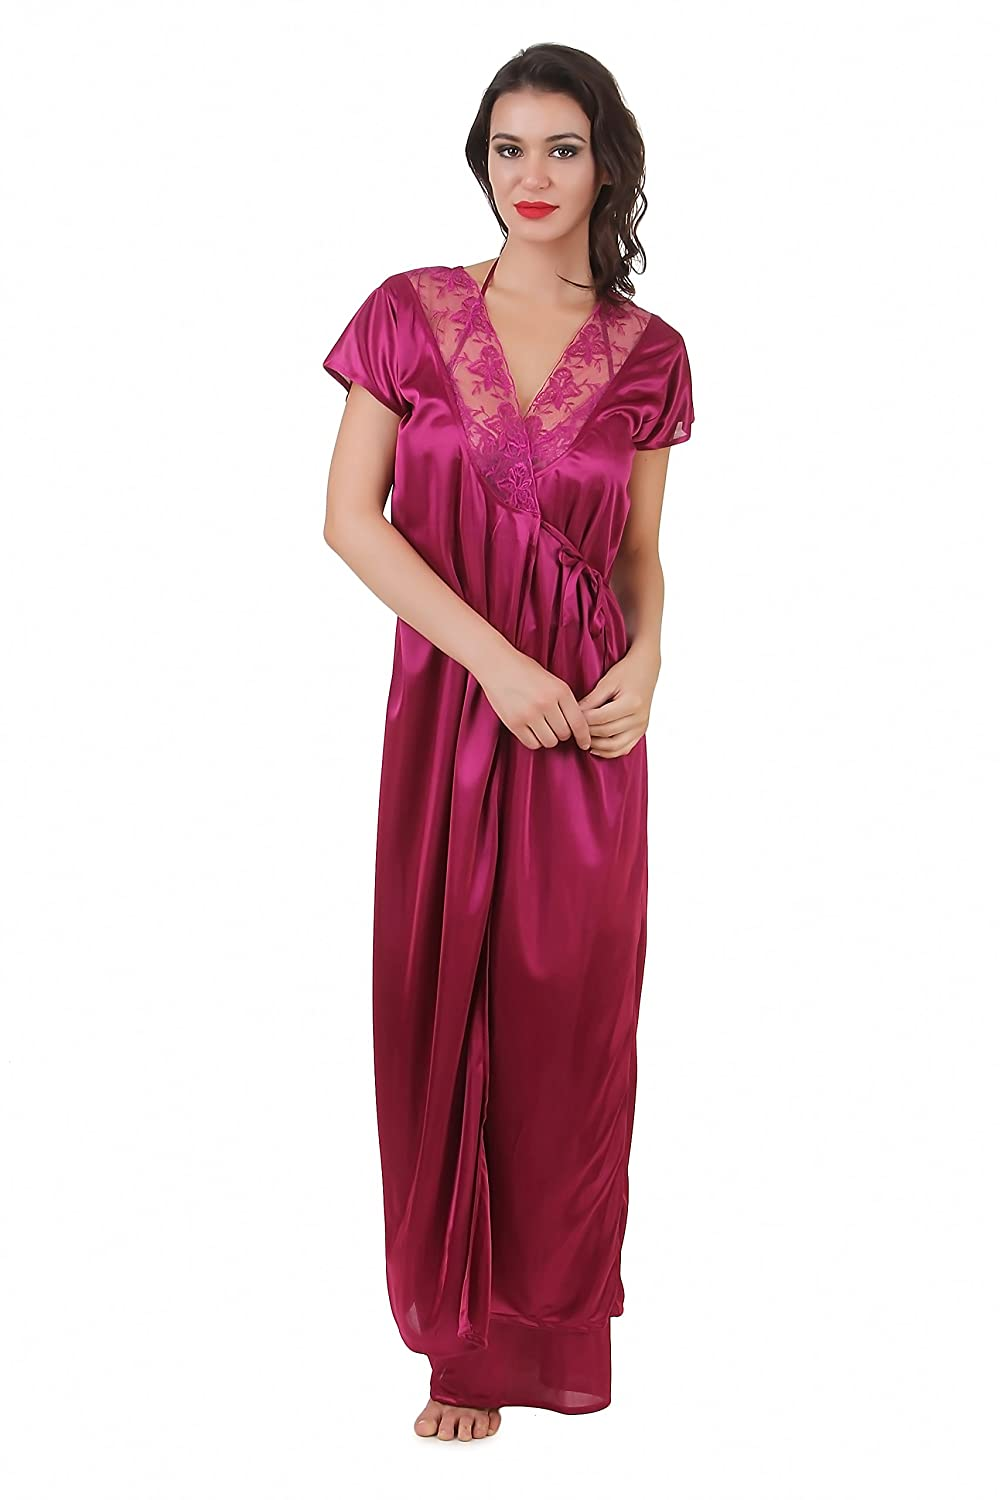 ac2f7ff7c5 Masha Women s Satin Nighty (NT2PC-A10-377  Jamuni  L)  Amazon.in  Clothing    Accessories